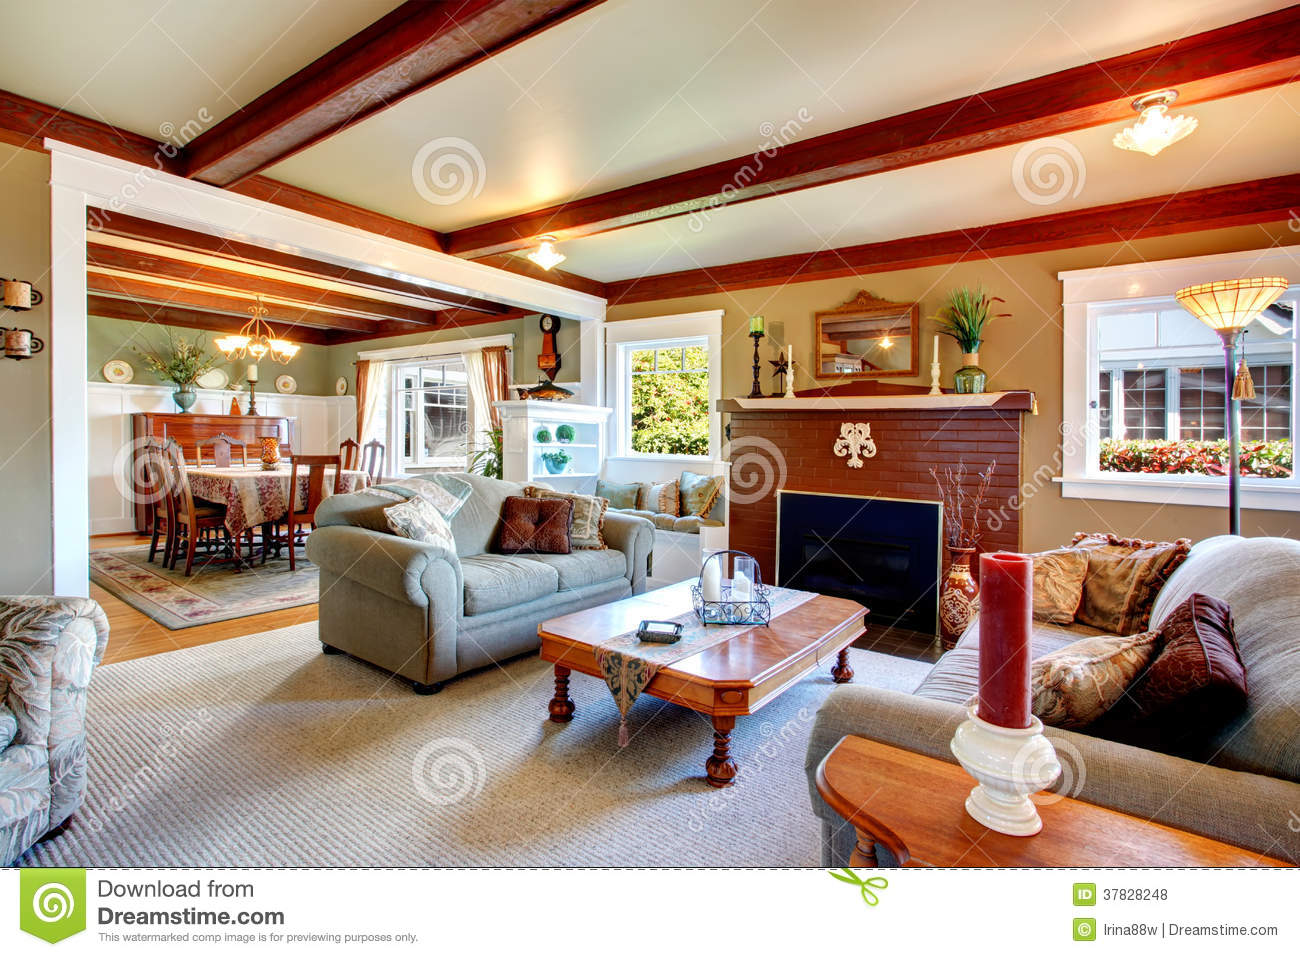 Elegant Antique Style Living Room With Dining Area Royalty Free Stock Photos Image 37828248